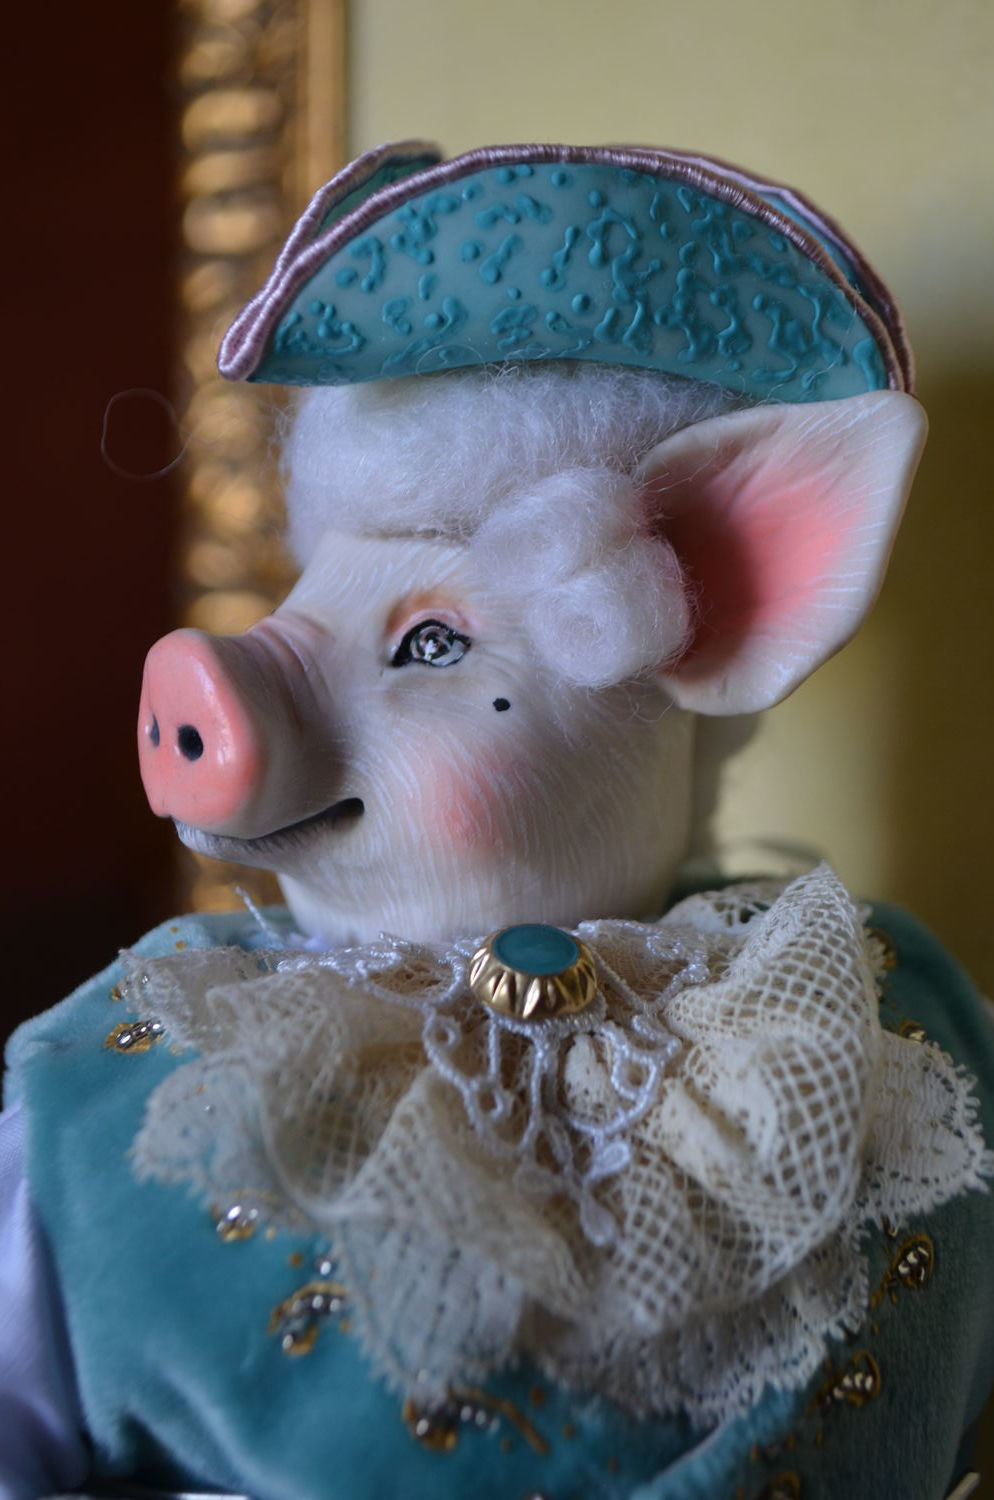 Author S Doll Monsieur Pig Shop Online On Livemaster With Shipping